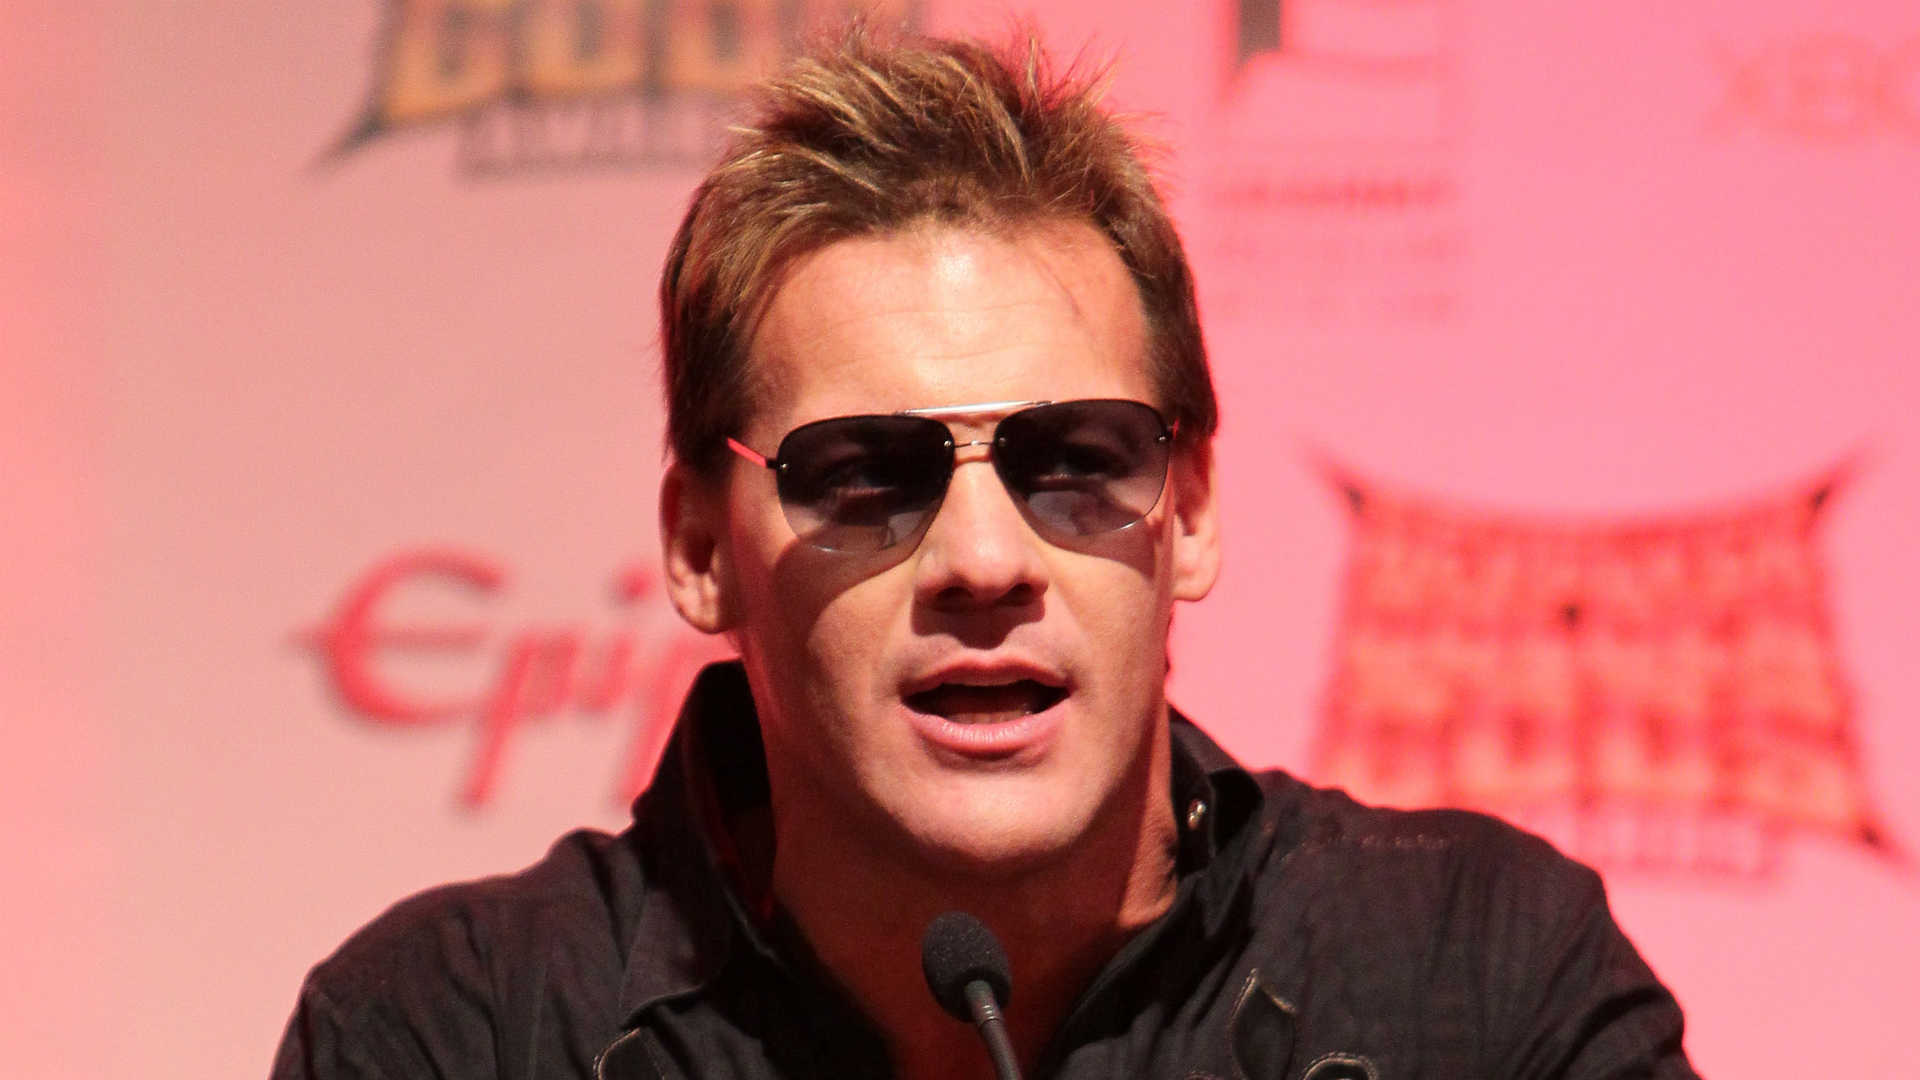 chris-jericho-wwe-102114-getty-ftr.jpg